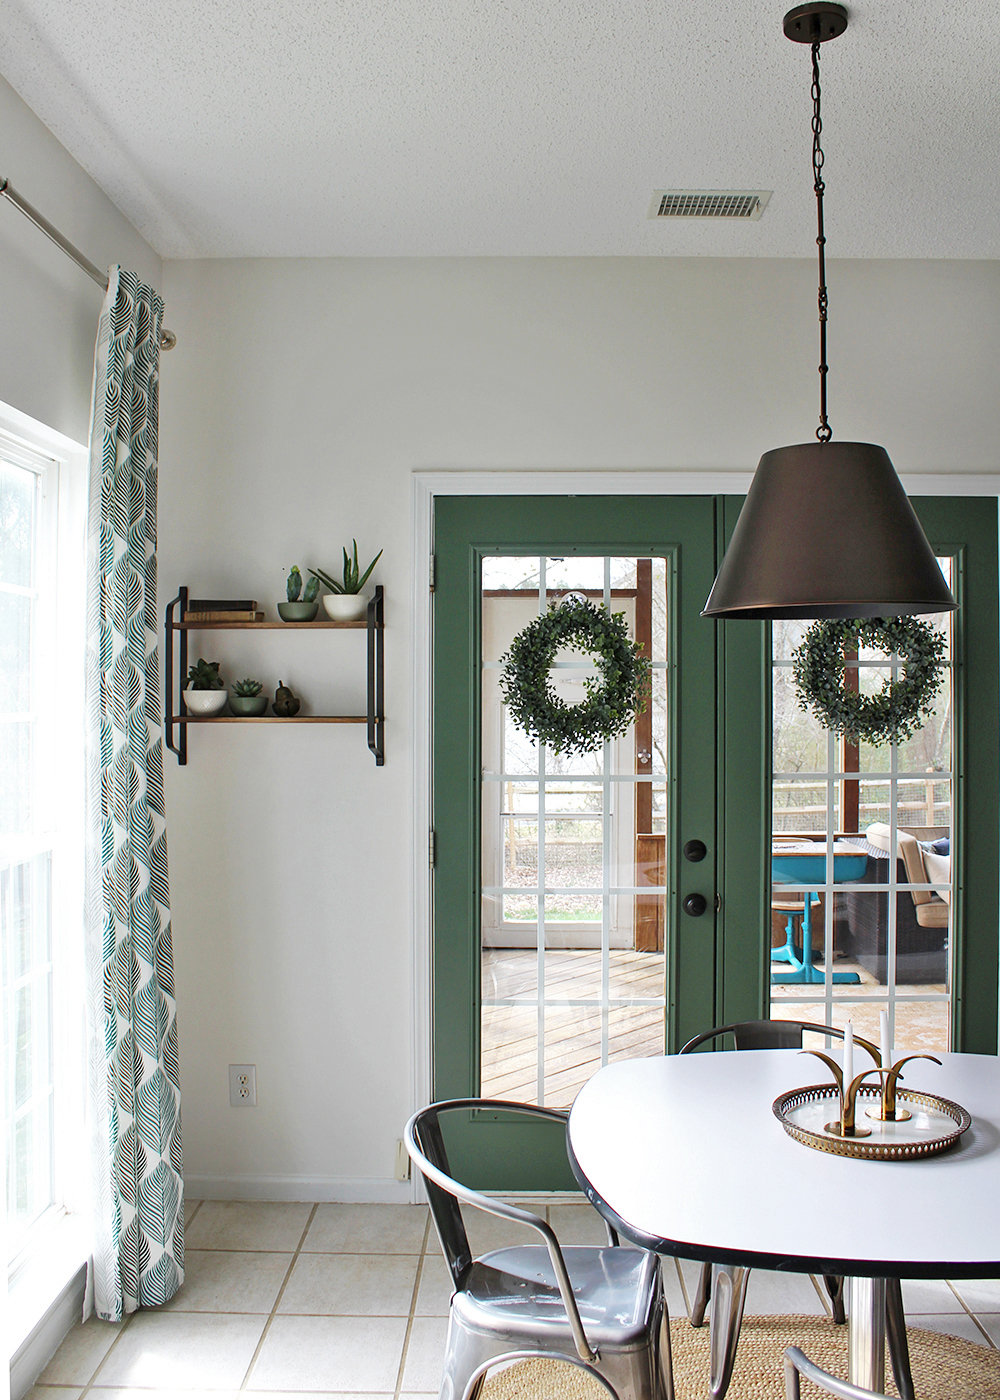 eat in kitchen, global feel with green and white #industrial #globaldesign #eatinkitchen #breakfastnook